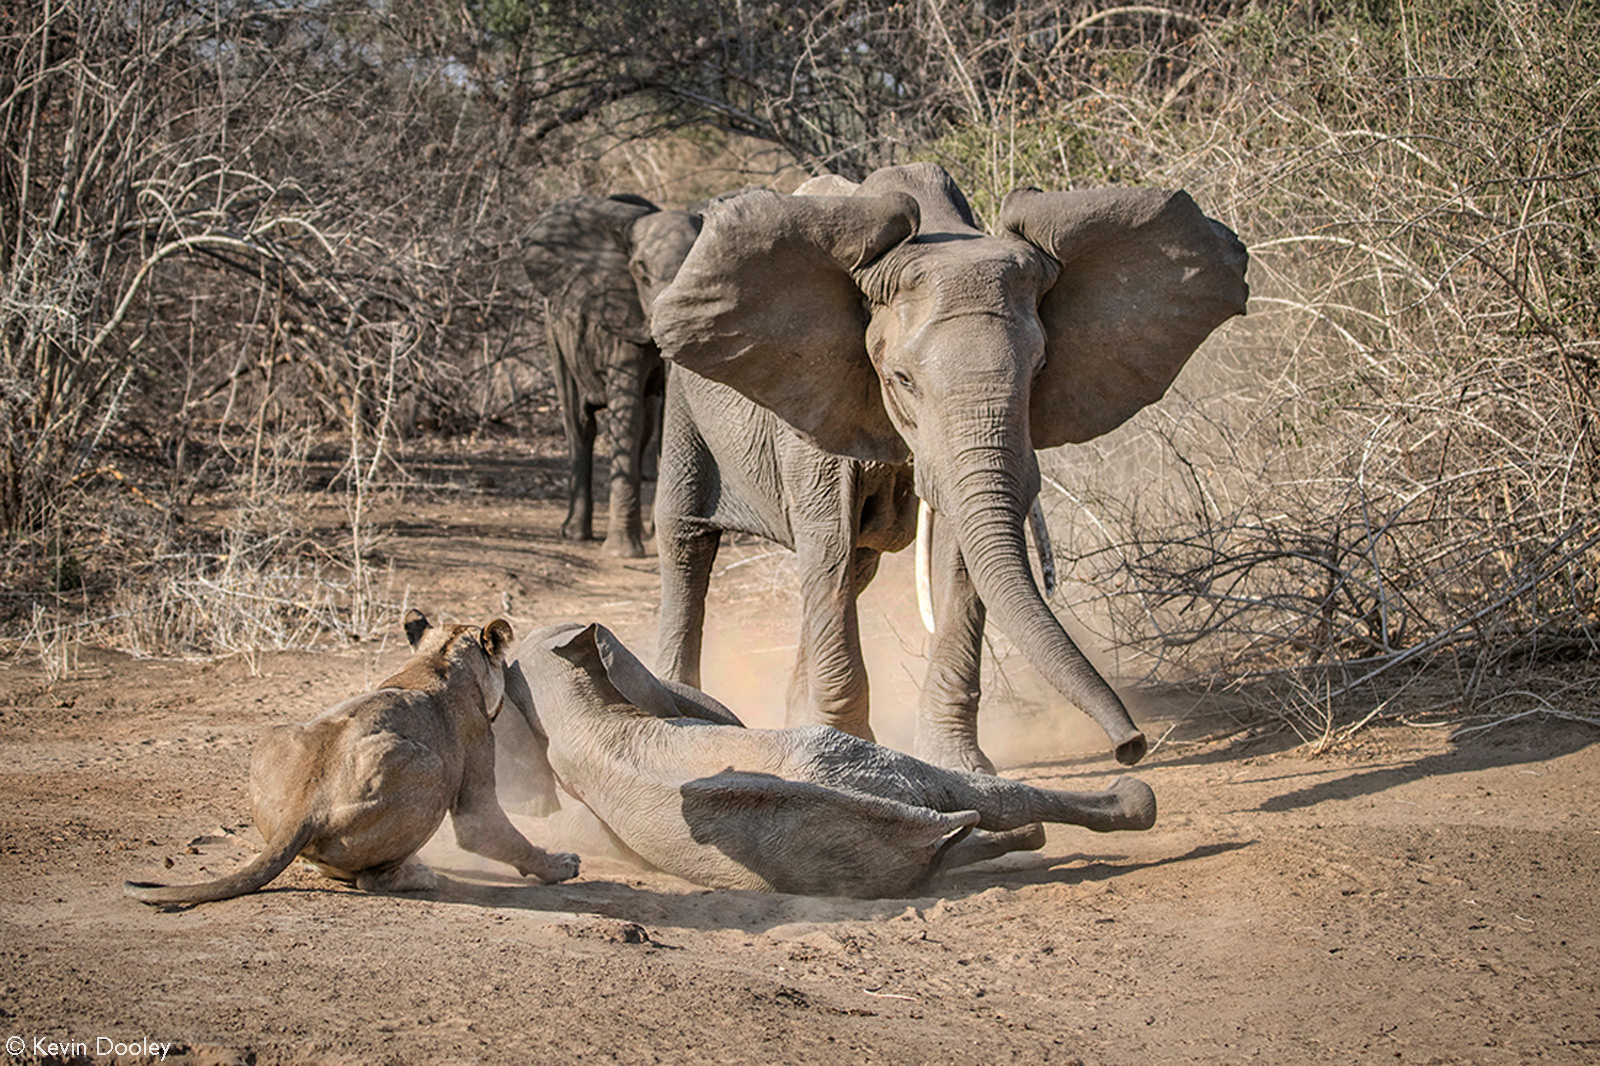 A mother elephant comes to the rescue to save her calf from a lioness. Mana Pools National Park, Zimbabwe © Kevin Dooley